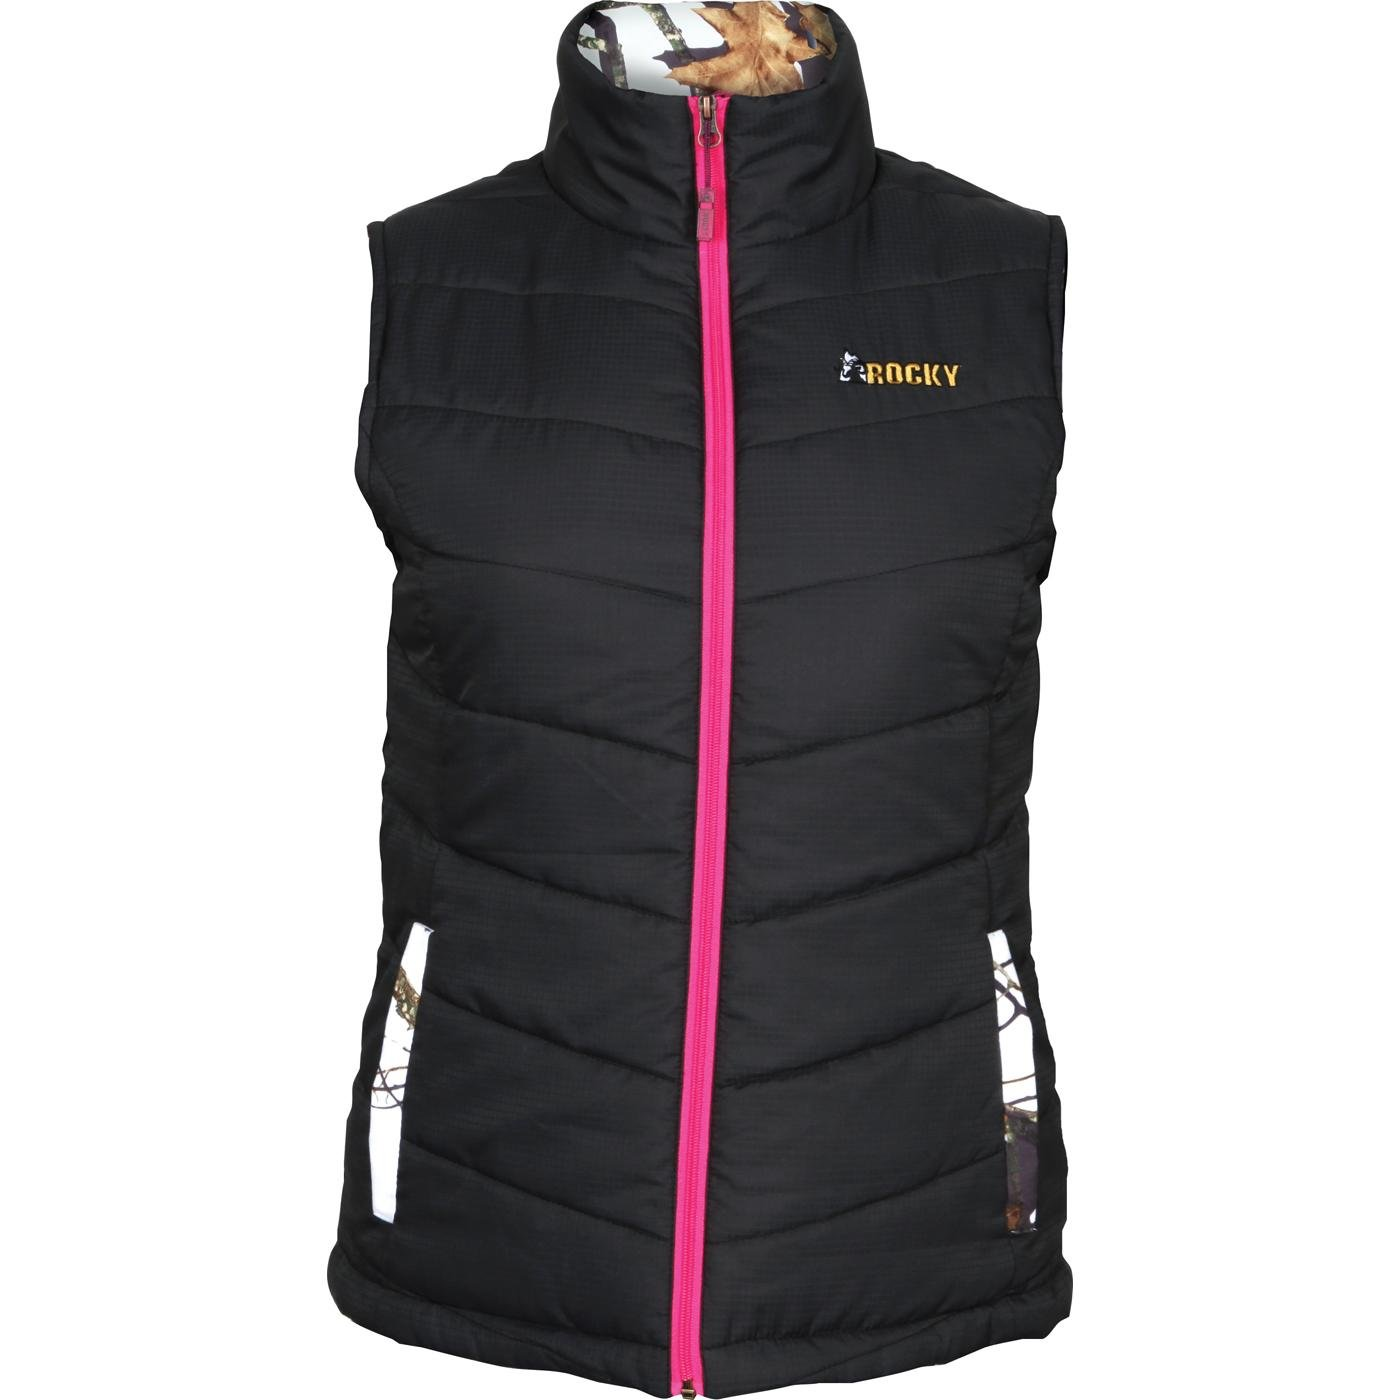 Rocky Women's Quilted Vest, Black, Medium by Rocky